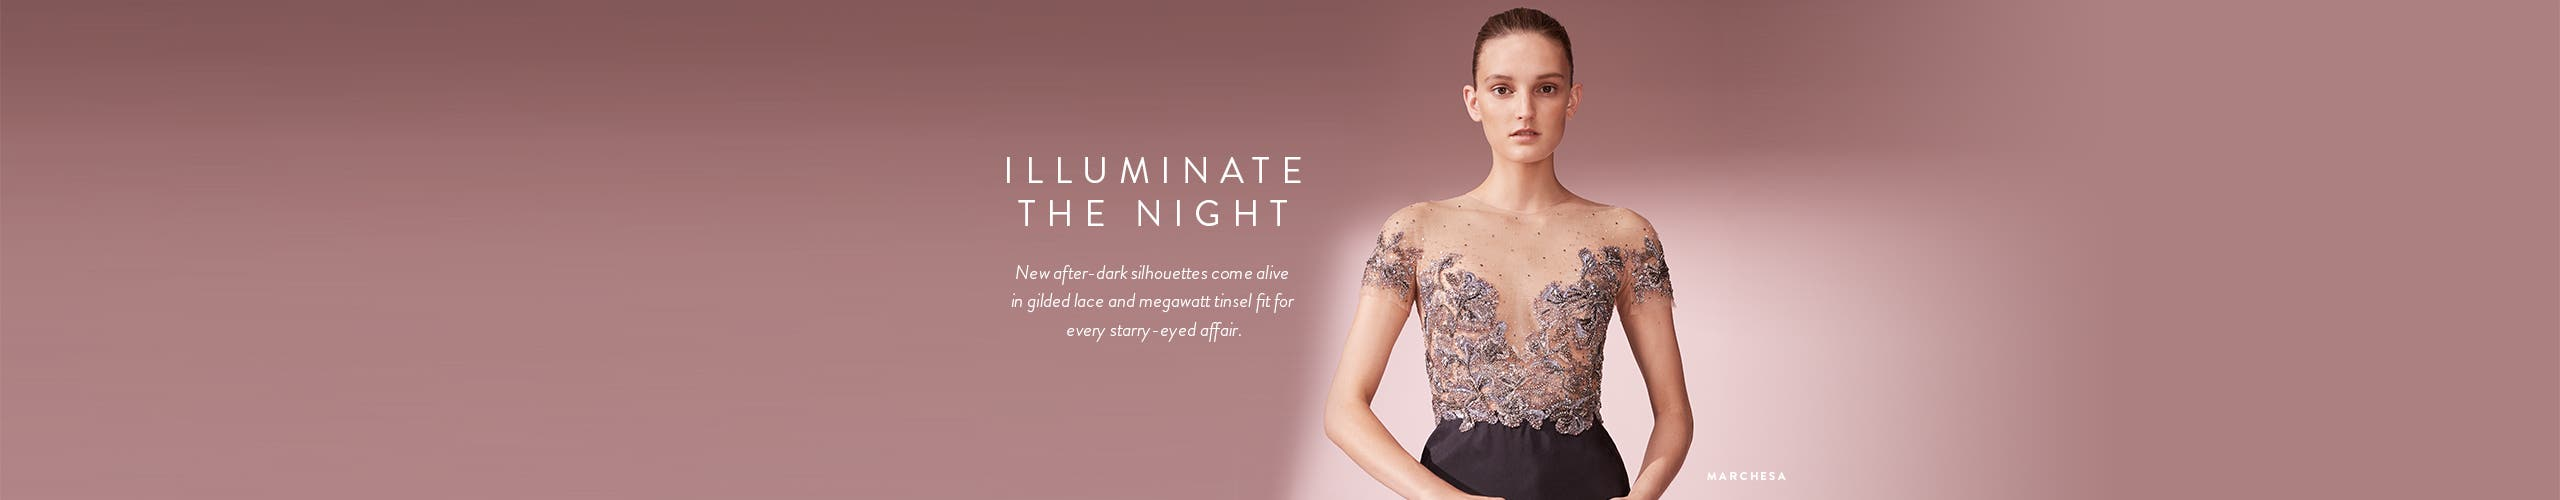 Designer eveningwear to illuminate the night.